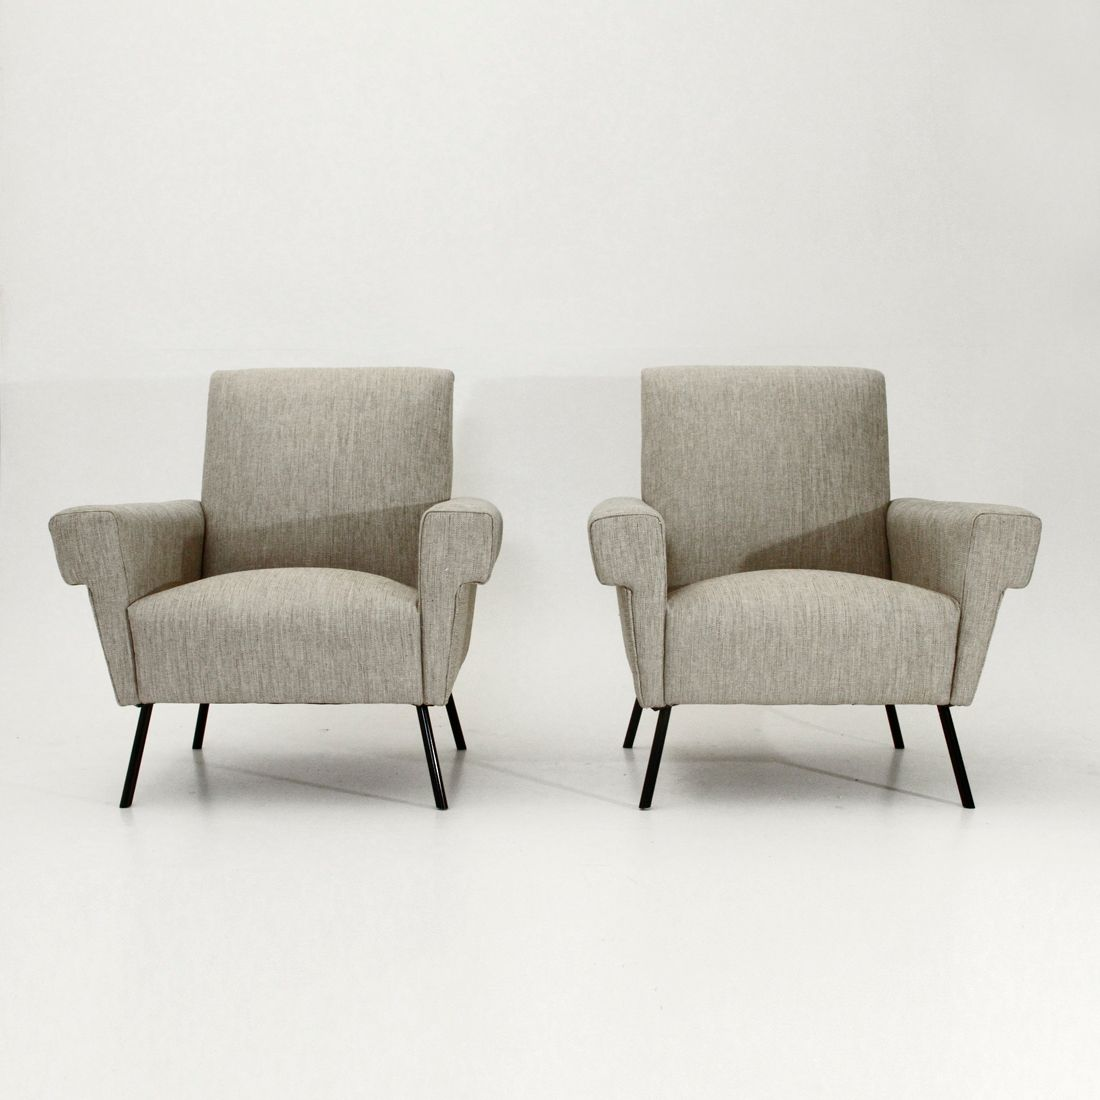 Mid century armchairs 1950s set of 2 for sale at pamono for 2 armchairs for sale